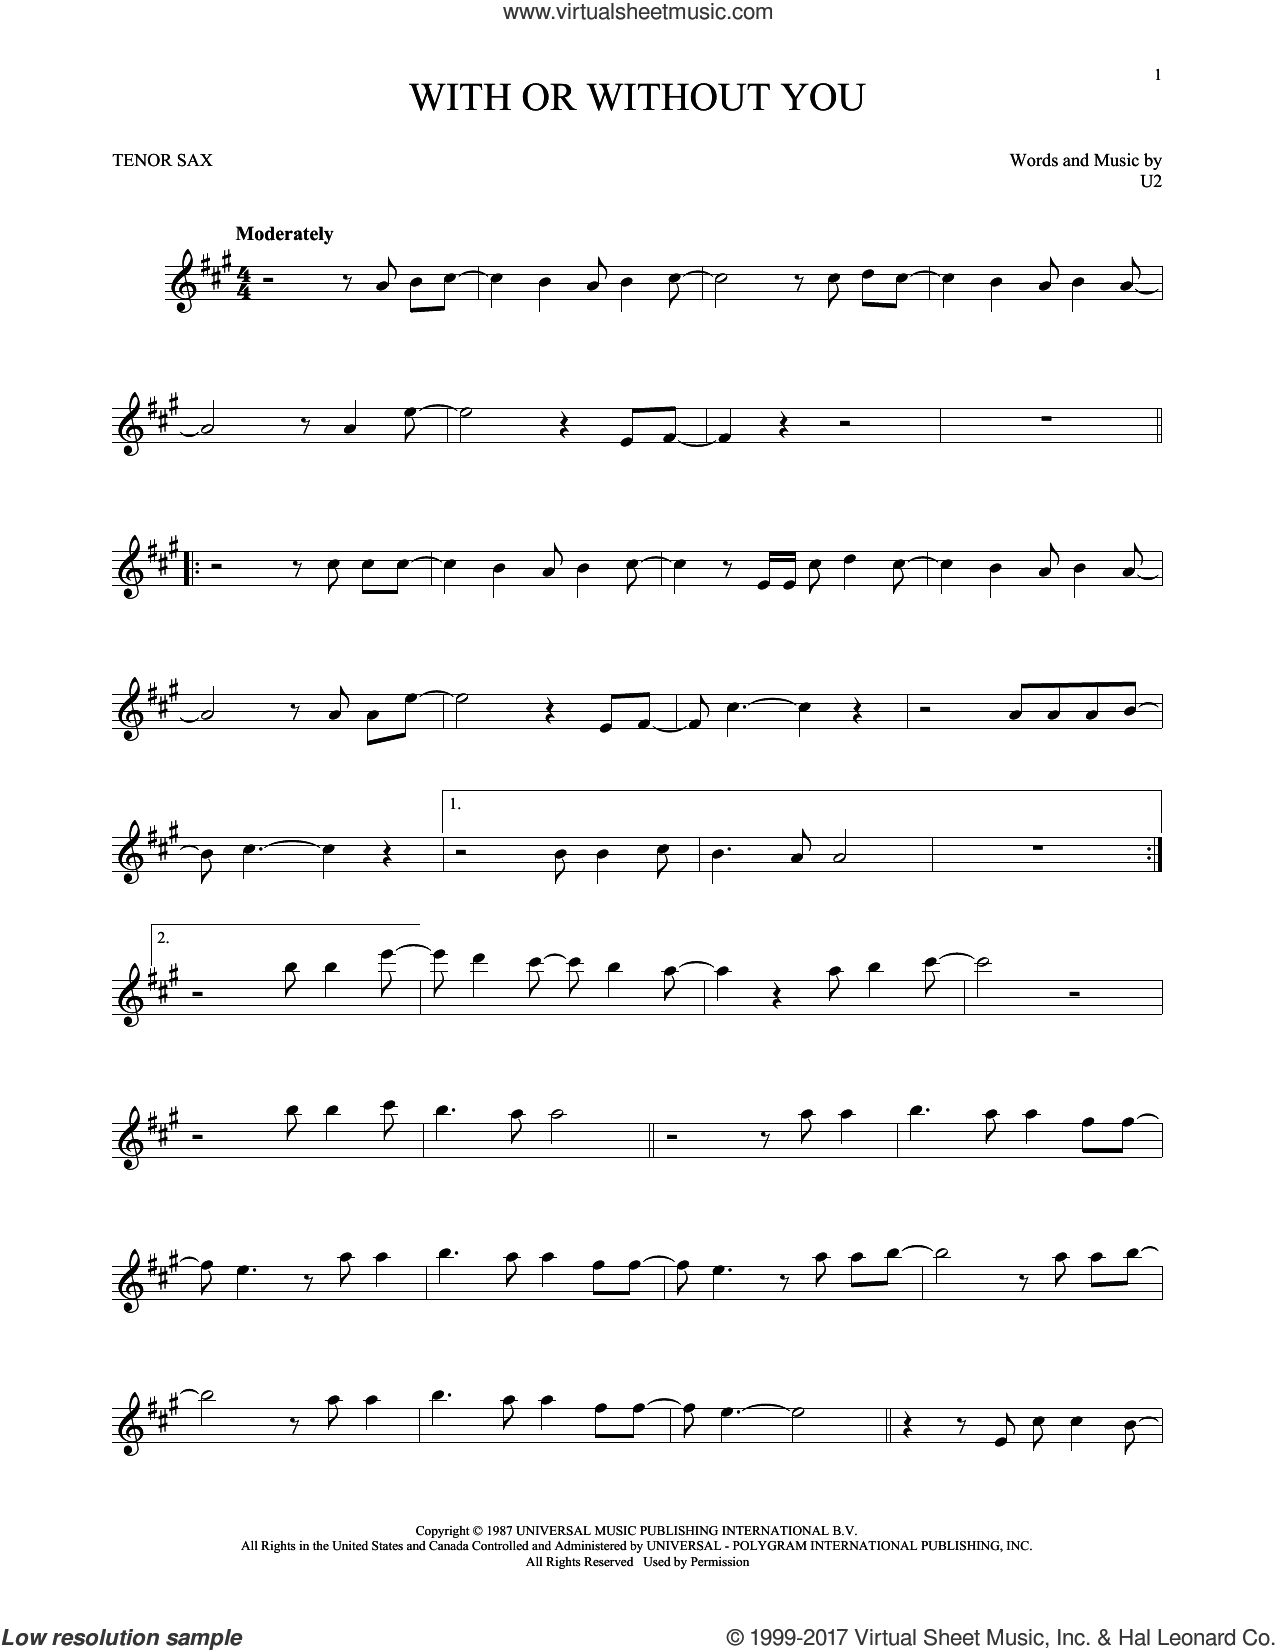 With Or Without You sheet music for tenor saxophone solo by U2, intermediate skill level